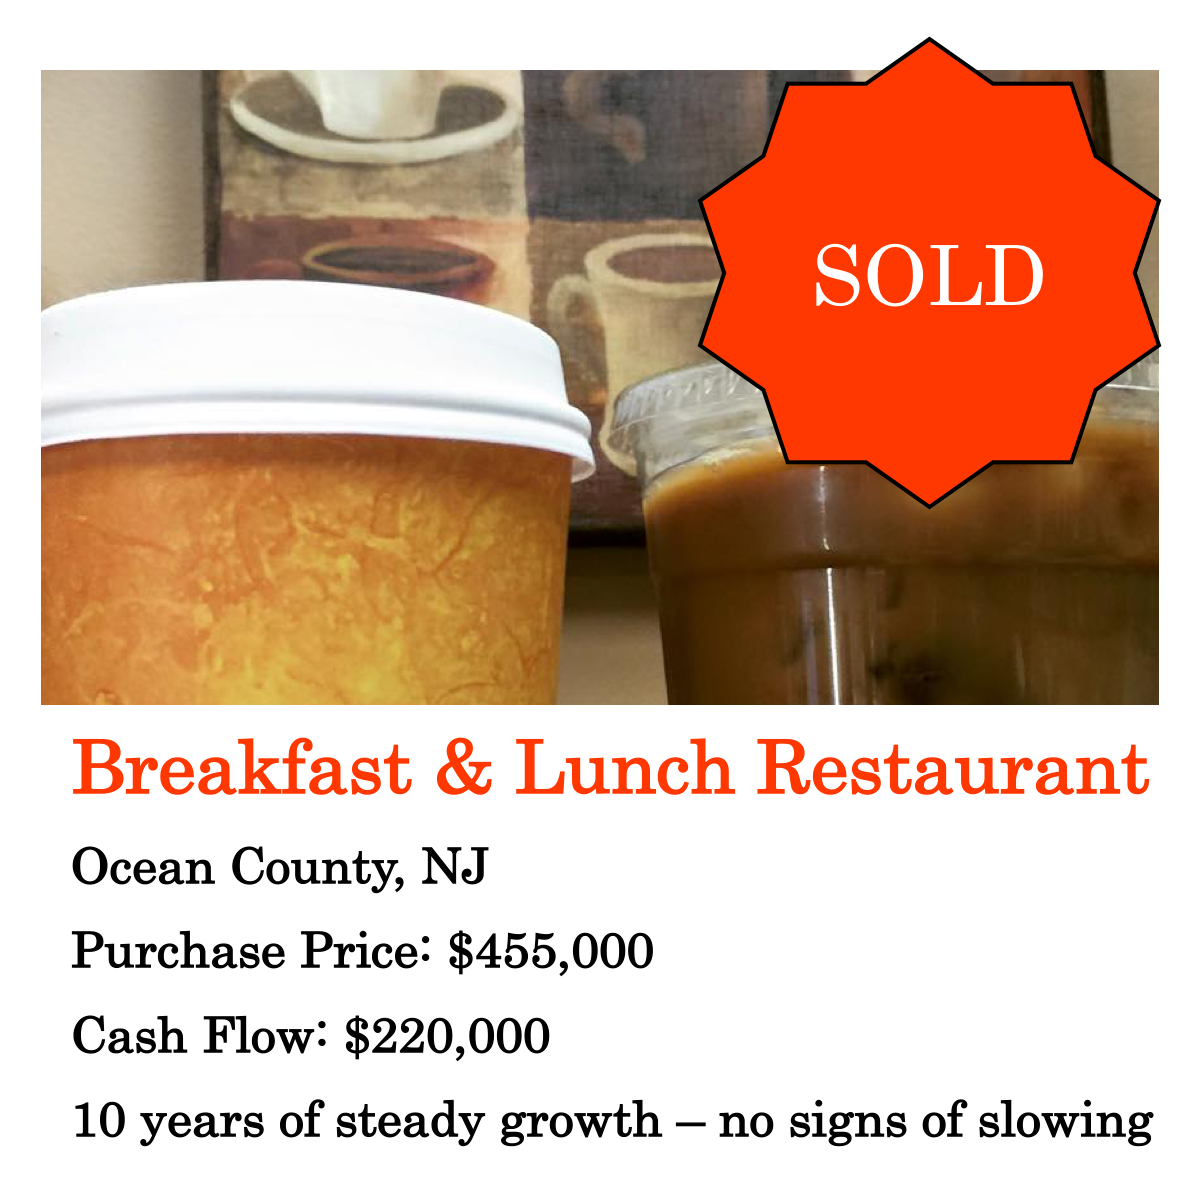 Breakfast & Lunch Restaurant.jpg